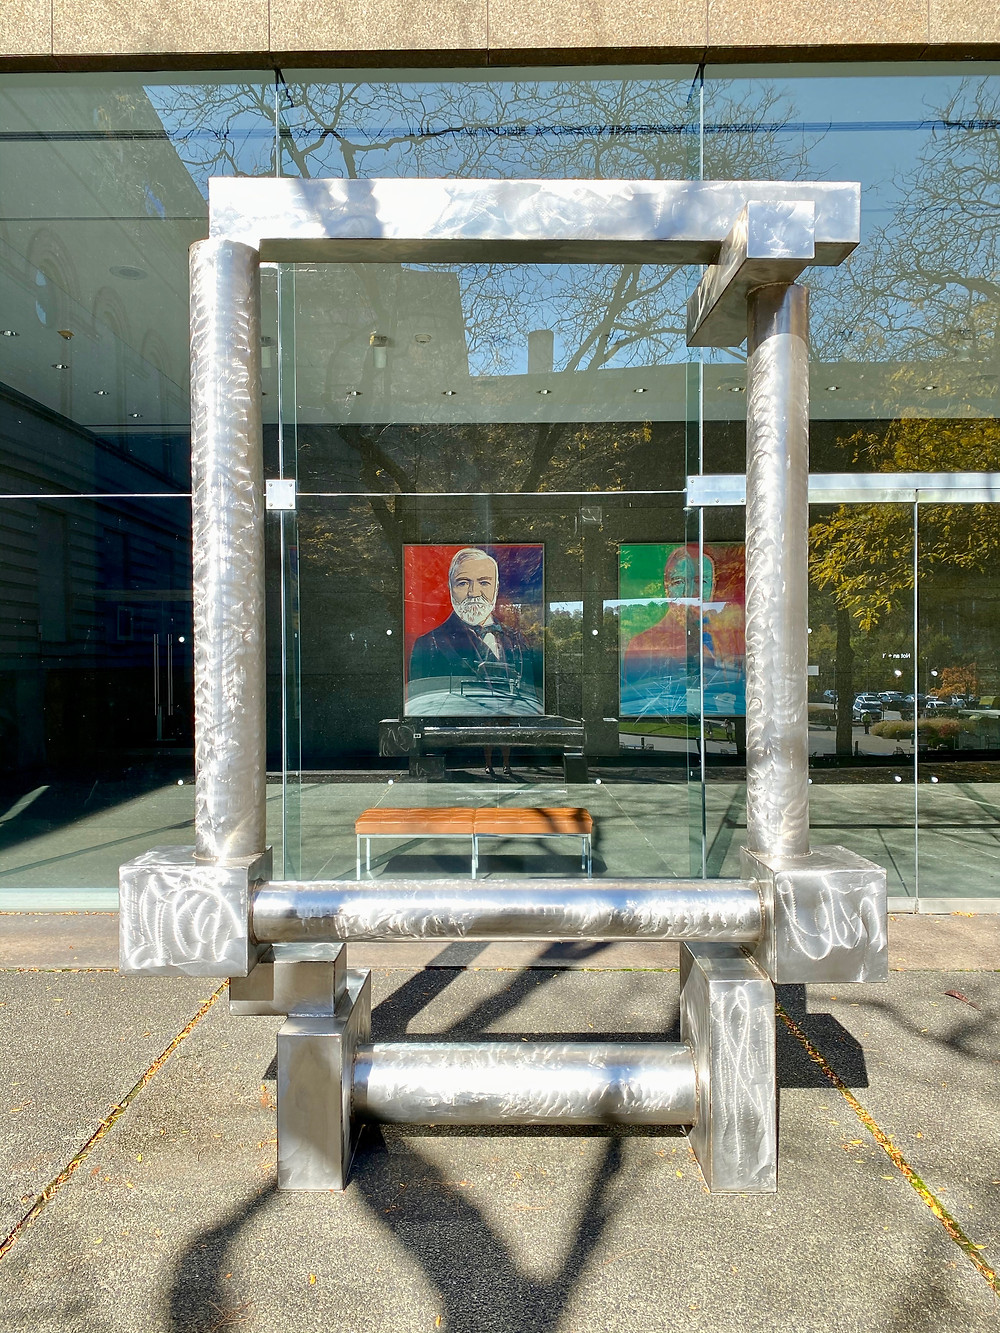 David Smith, Cubi XXIV, 1964, framing Andy Warhol's portraits of Carnegie